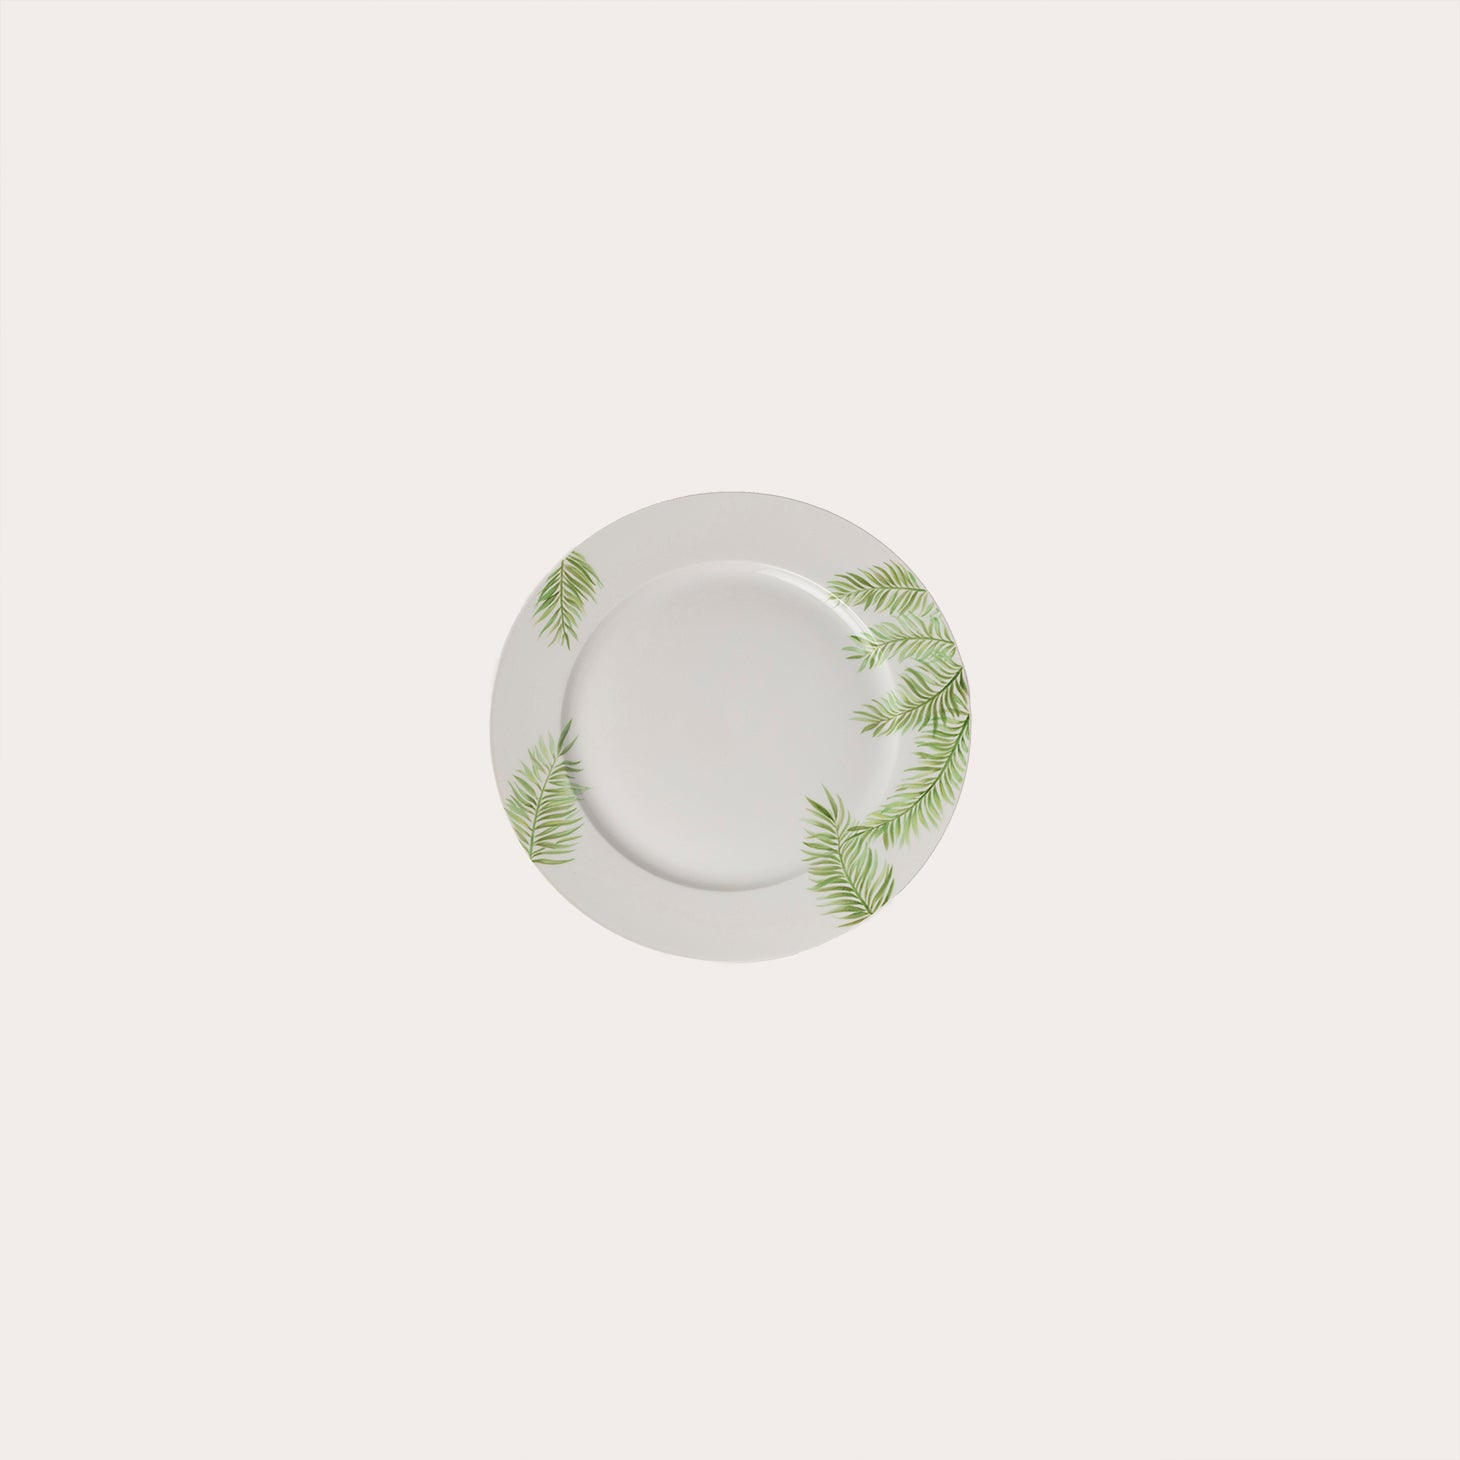 Palm Beach Two Presentation Plate Accessories Nymphenburg Designer Furniture Sku: 542-100-10283